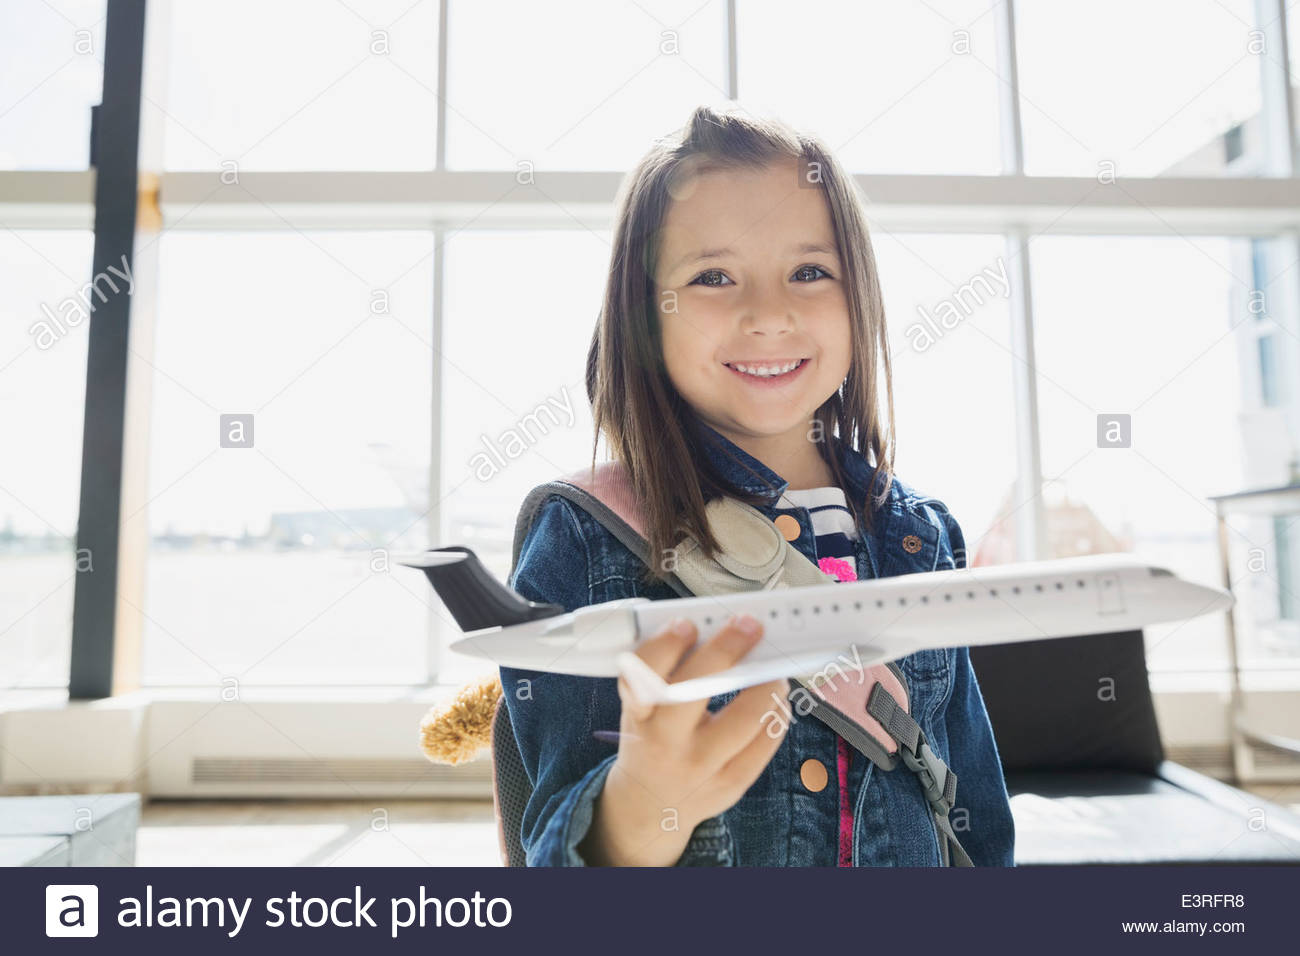 Girl Playing with toy airplane in airport Photo Stock